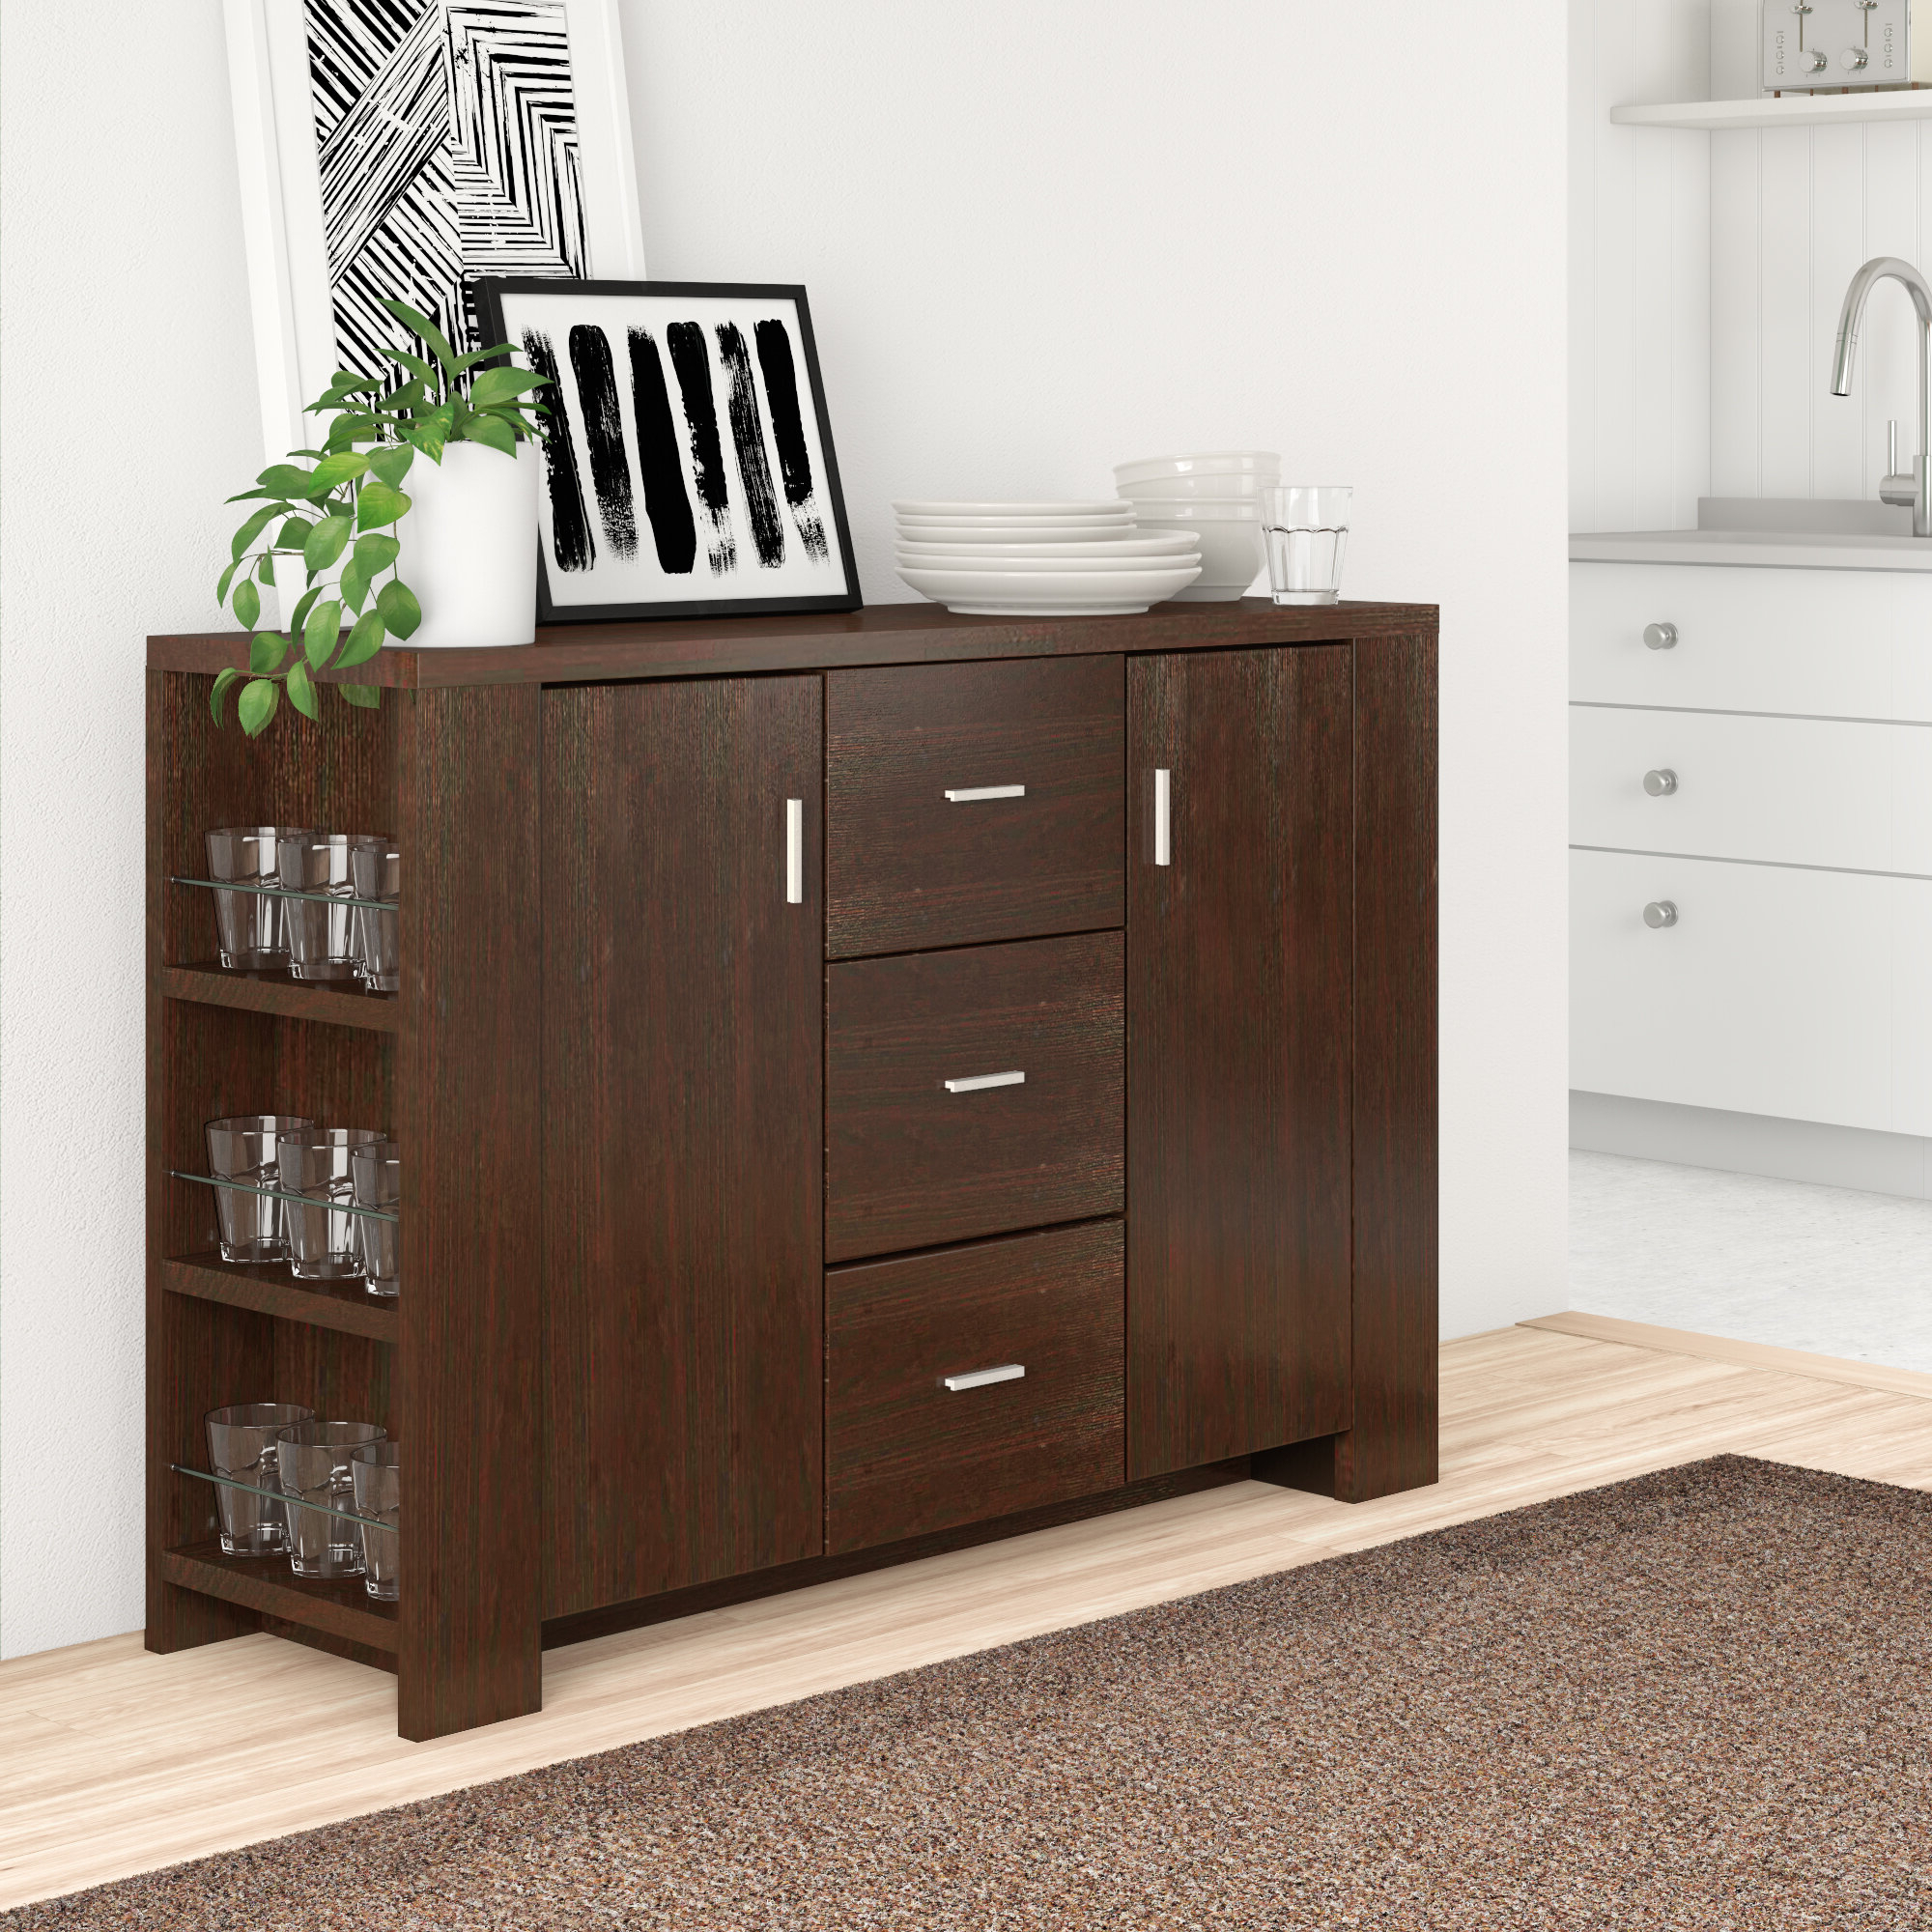 Solid Wood Sideboards & Buffets You'll Love In 2019 | Wayfair Pertaining To Contemporary Style Wooden Buffets With Two Side Door Storage Cabinets (View 18 of 20)